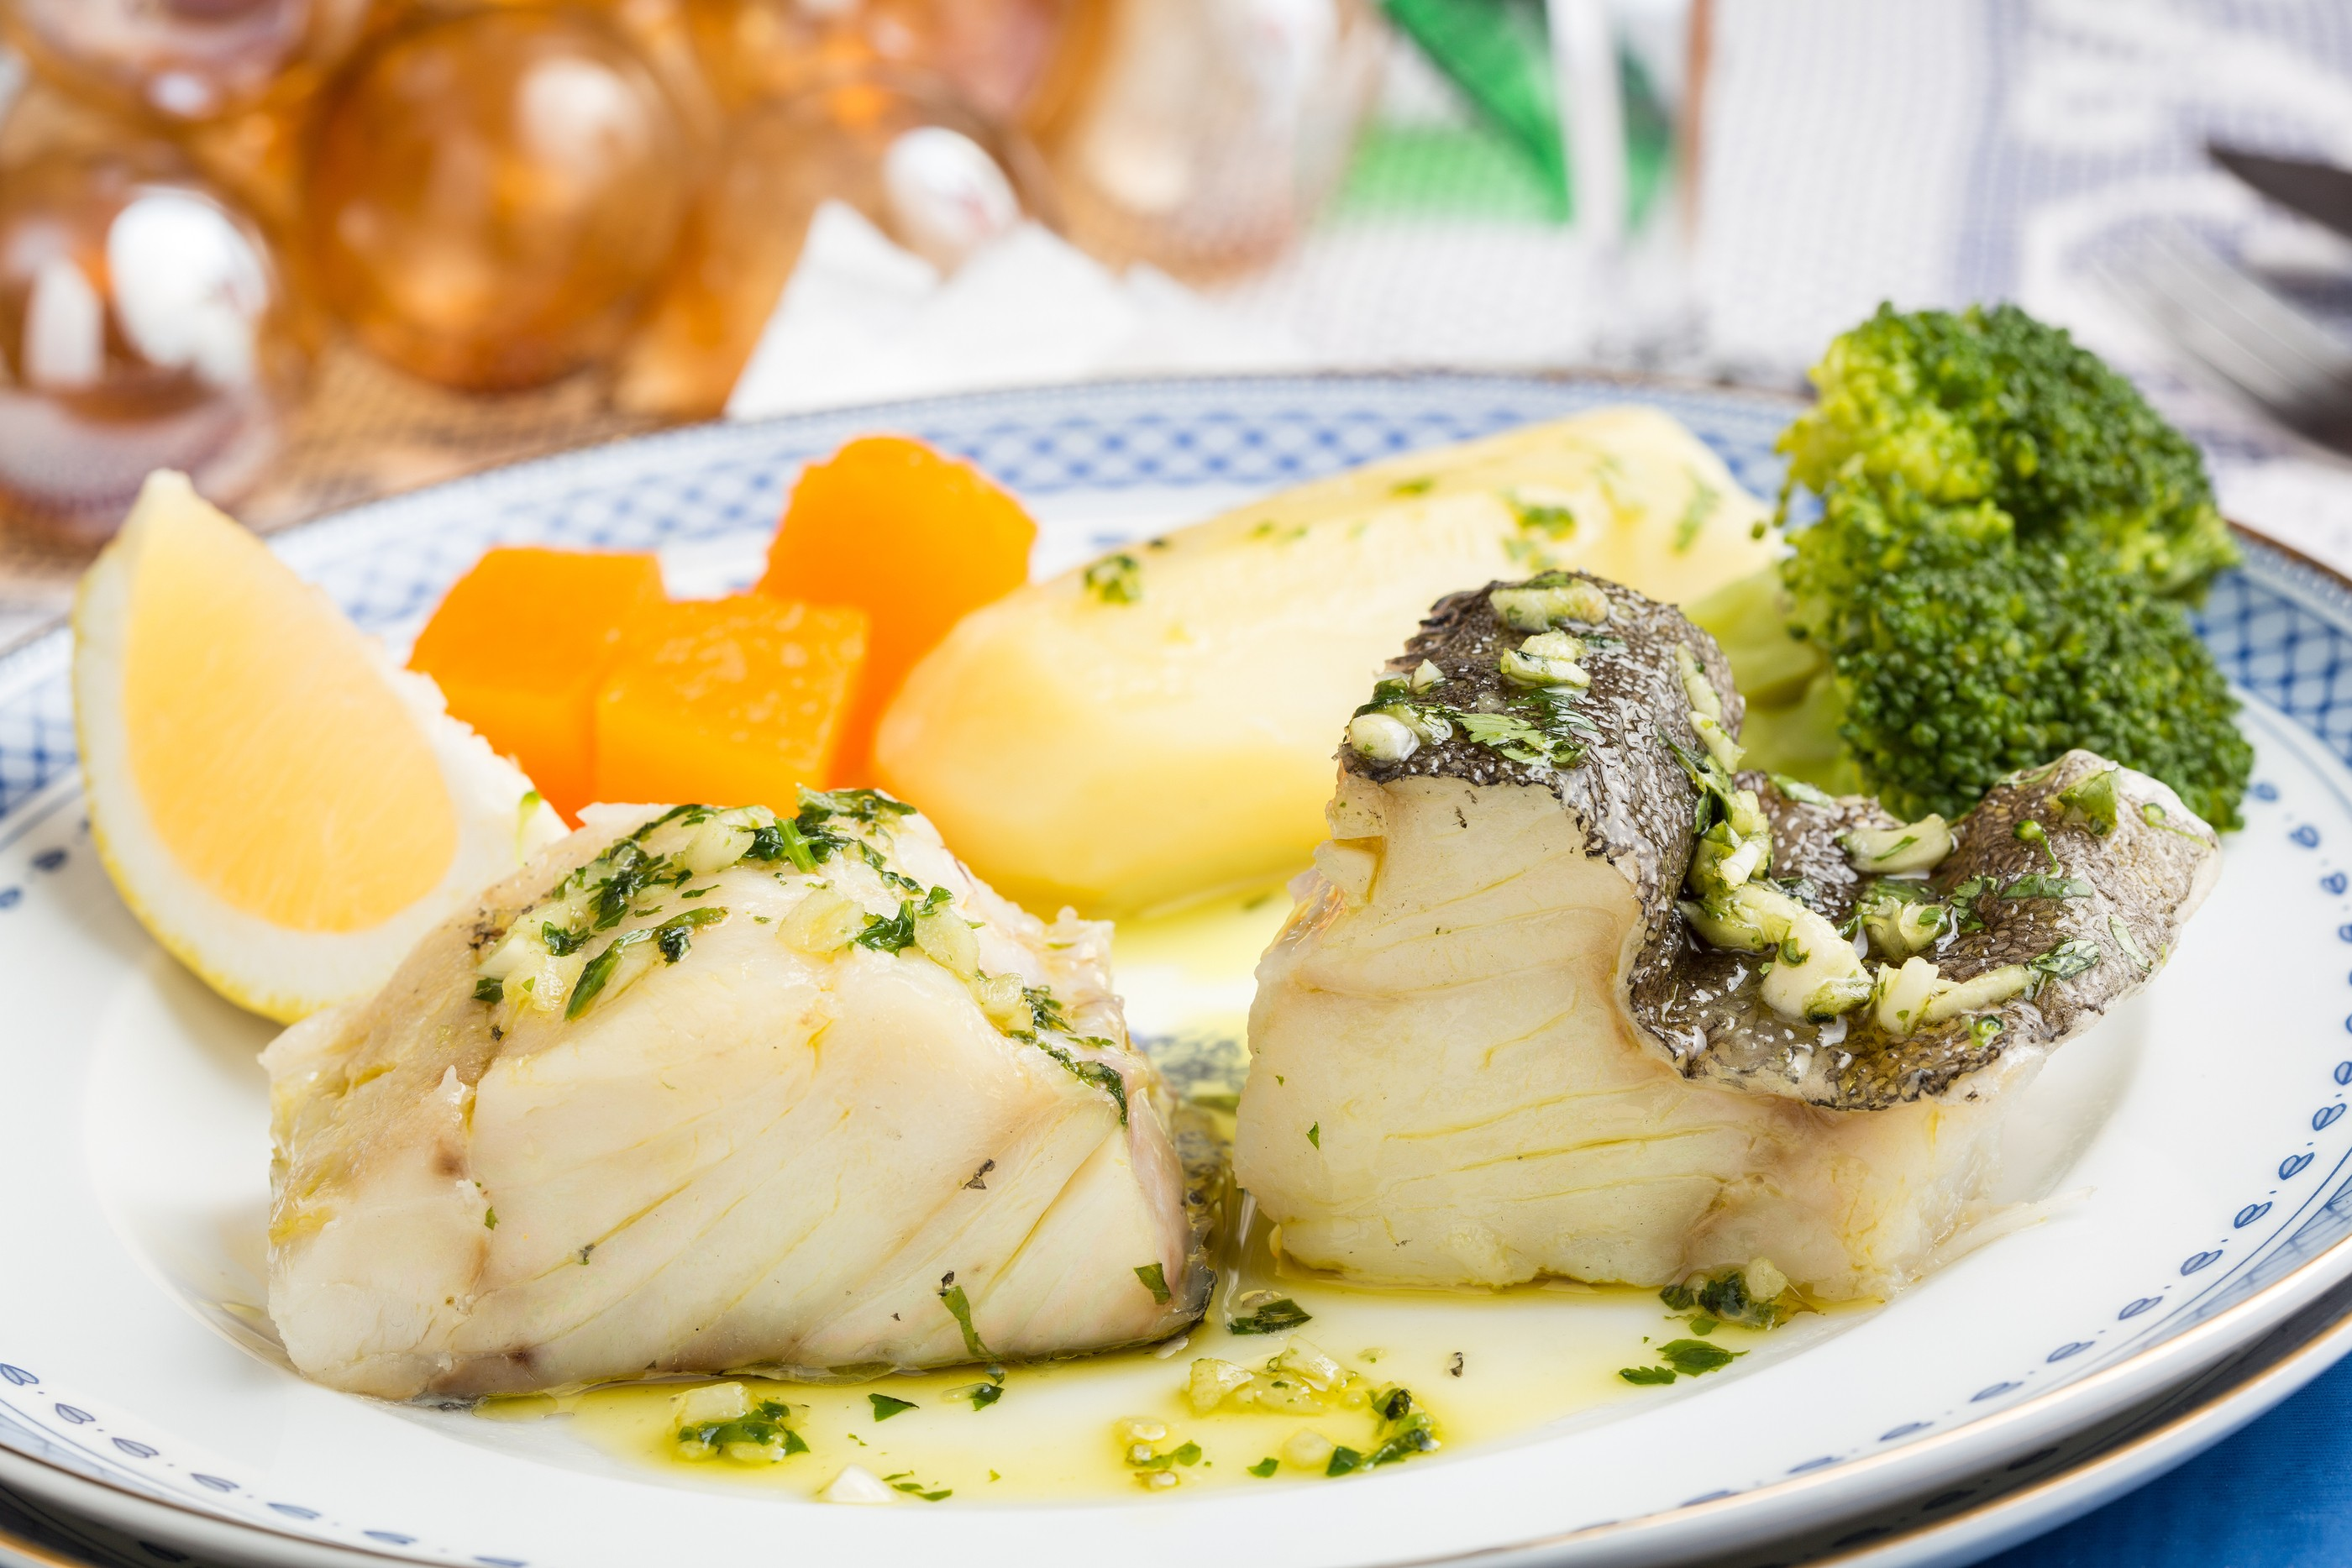 Steamed Cod and Vegetables